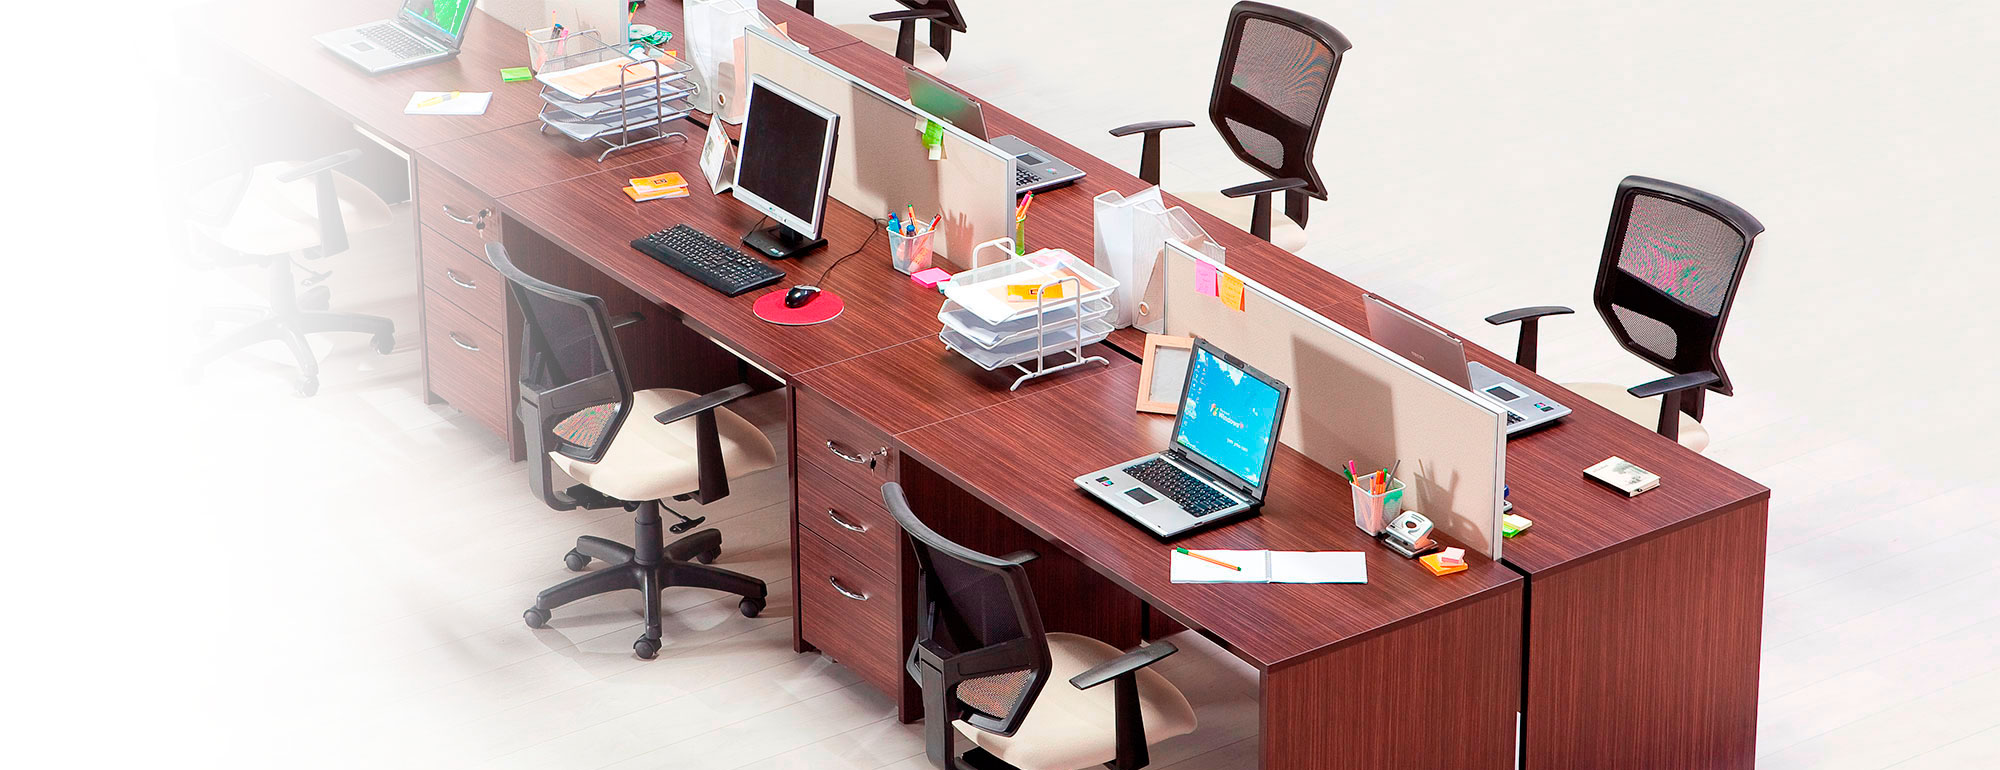 IDEAL DESIGN helps the successful development of your business by creating ergonomic and stylish office furniture.